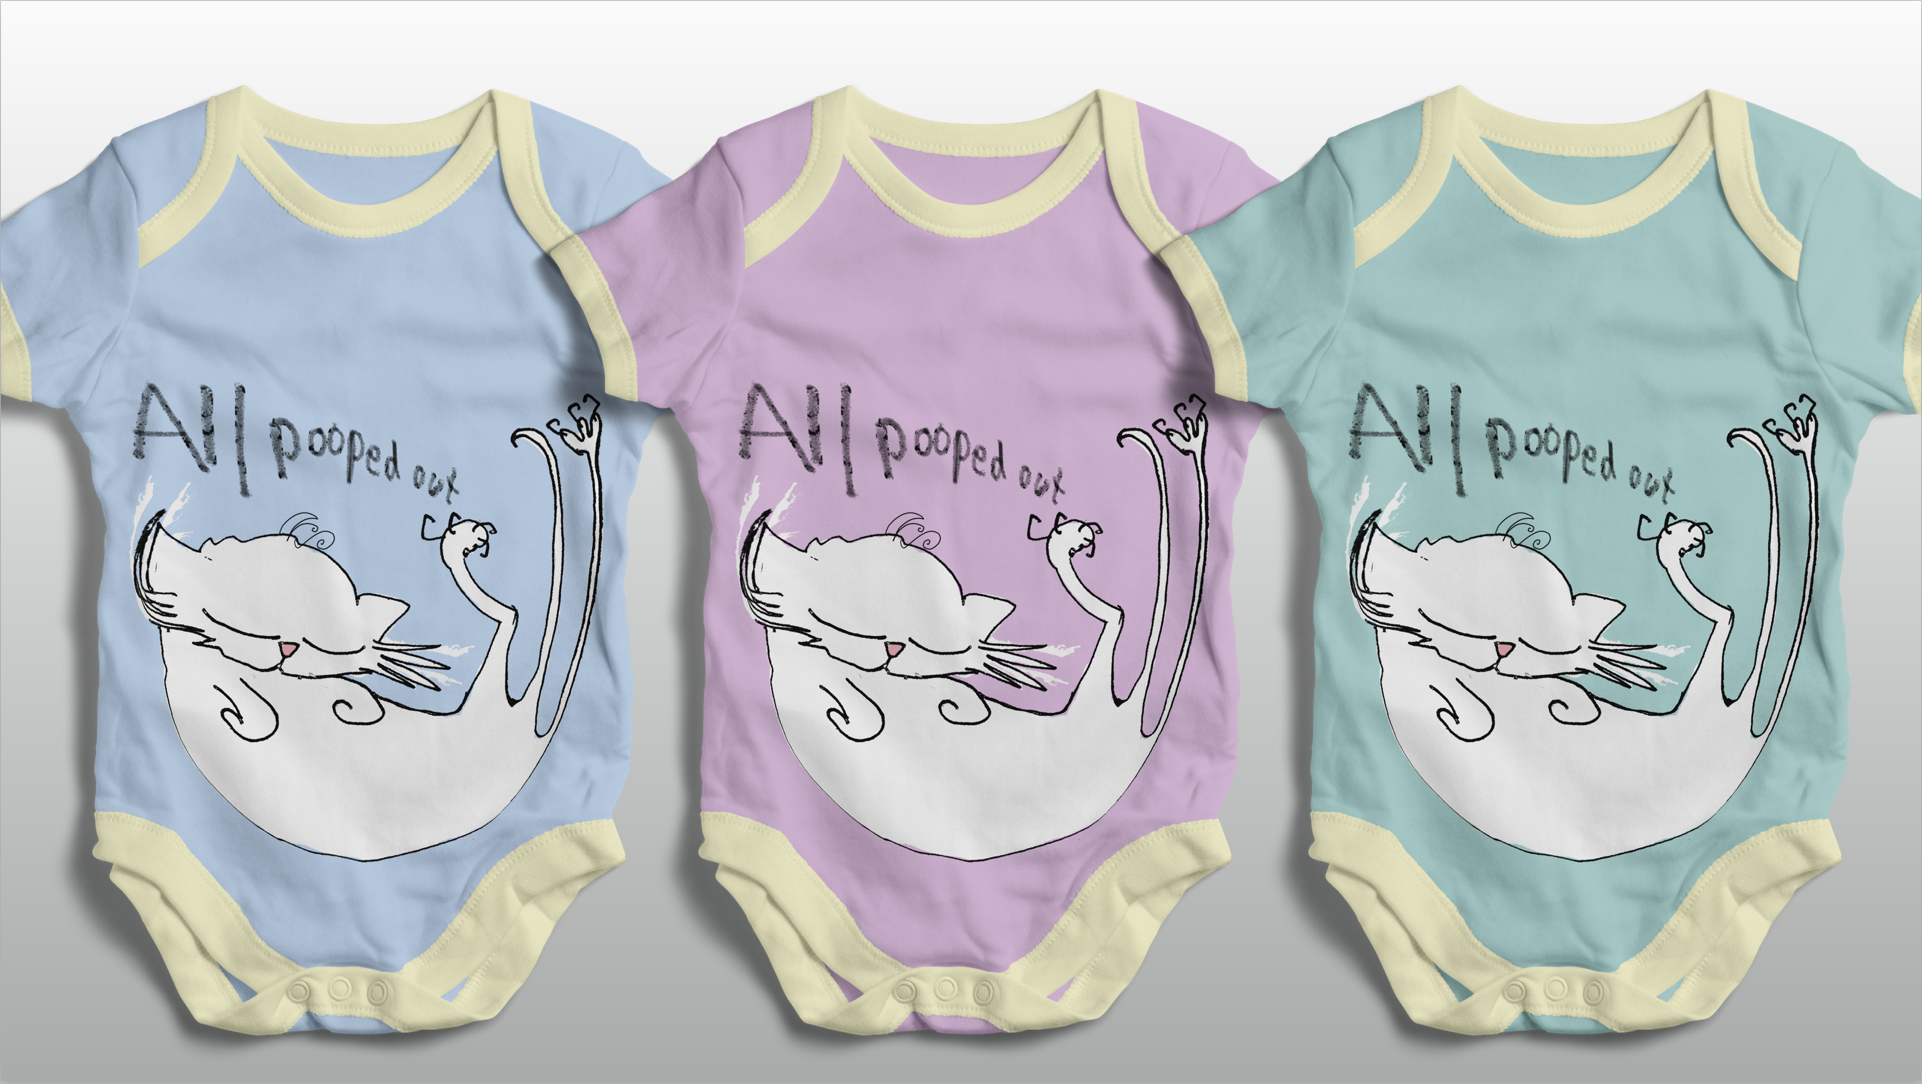 CAT DONT CARE | BABY SUITS VESTS 3 | NATALIE PALMER SUTTON | ILLUSTRATION | GIFTS FOR CRAZY CAT LOVERS